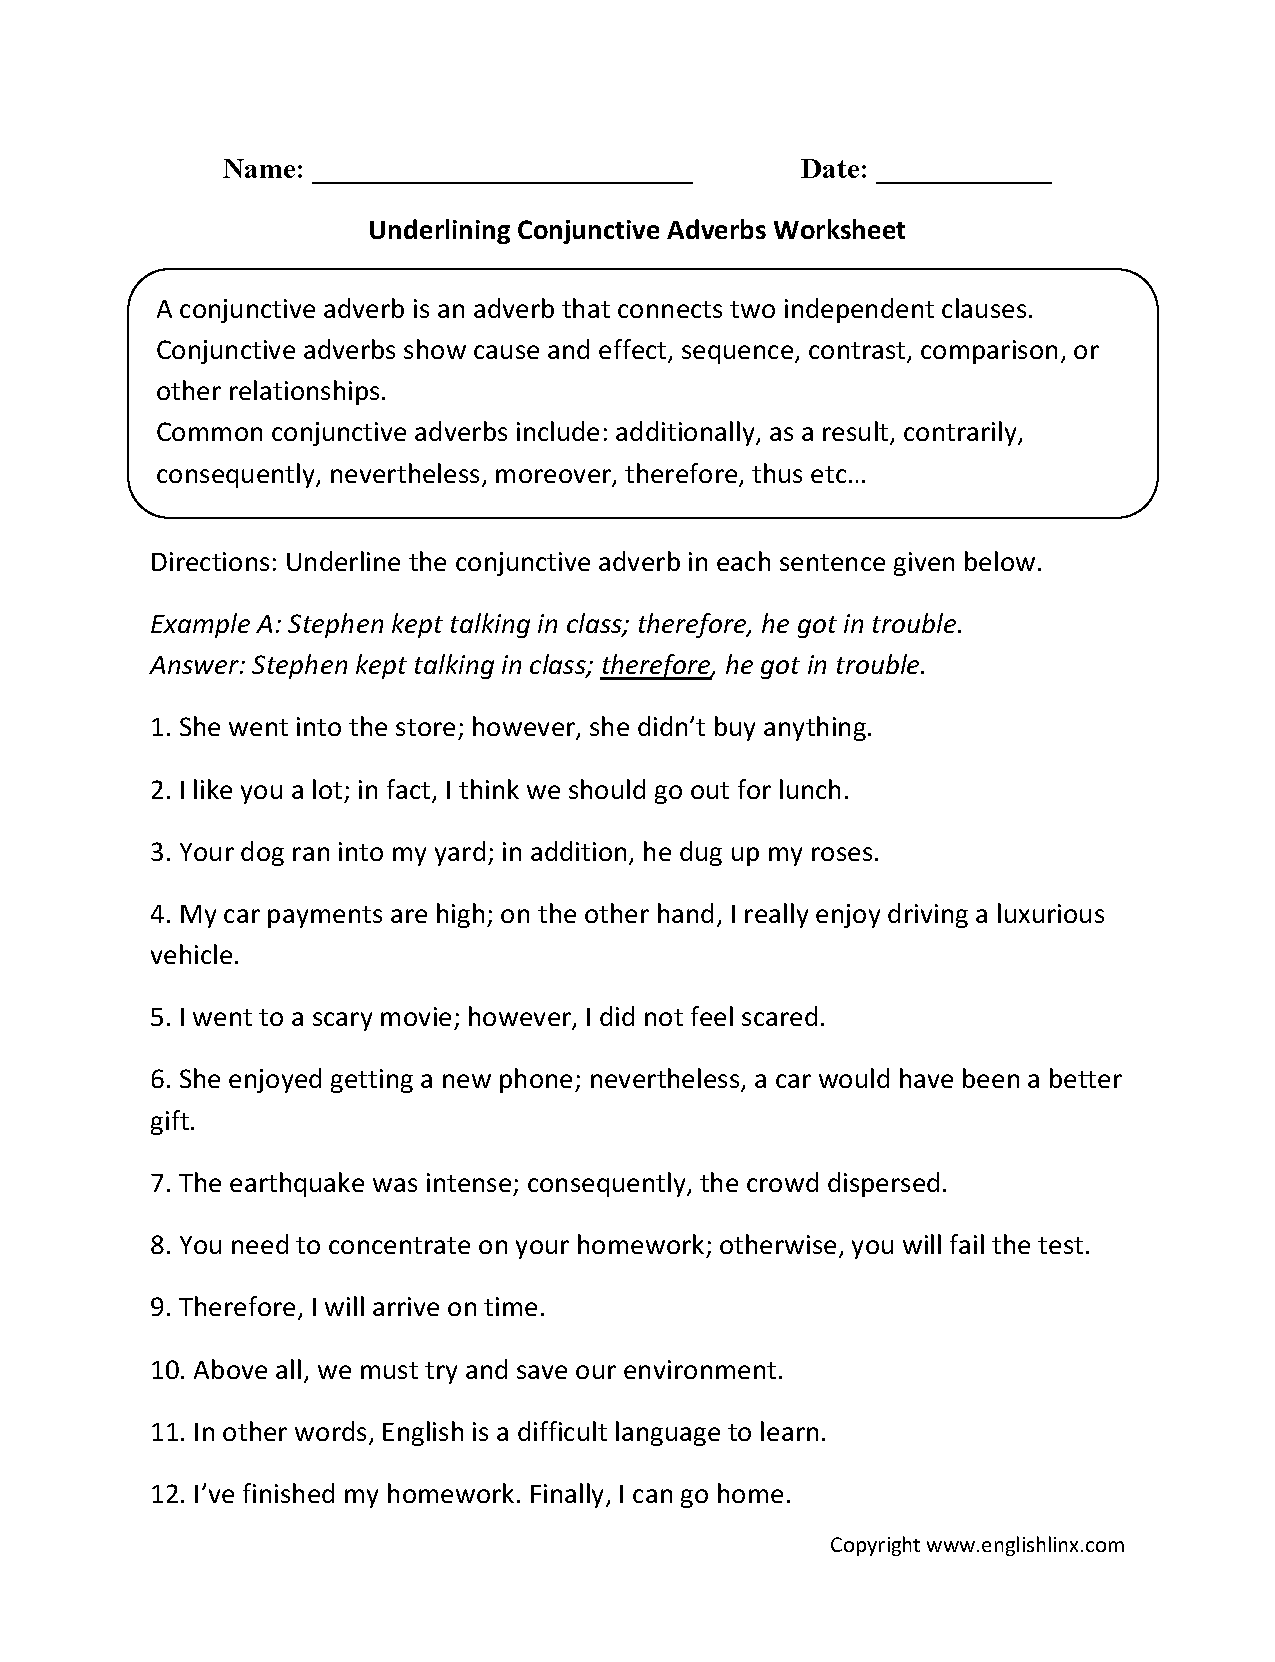 Weirdmailus  Seductive Englishlinxcom  Conjunctions Worksheets With Fascinating Worksheet With Beauteous Multiplication Worksheet Single Digit Also Addition Fact Family Worksheets In Addition Characteristics Of Life Worksheets And Cause And Effect Worksheets Grade  As Well As Khan Math Worksheets Additionally Spanish Family Worksheets From Englishlinxcom With Weirdmailus  Fascinating Englishlinxcom  Conjunctions Worksheets With Beauteous Worksheet And Seductive Multiplication Worksheet Single Digit Also Addition Fact Family Worksheets In Addition Characteristics Of Life Worksheets From Englishlinxcom